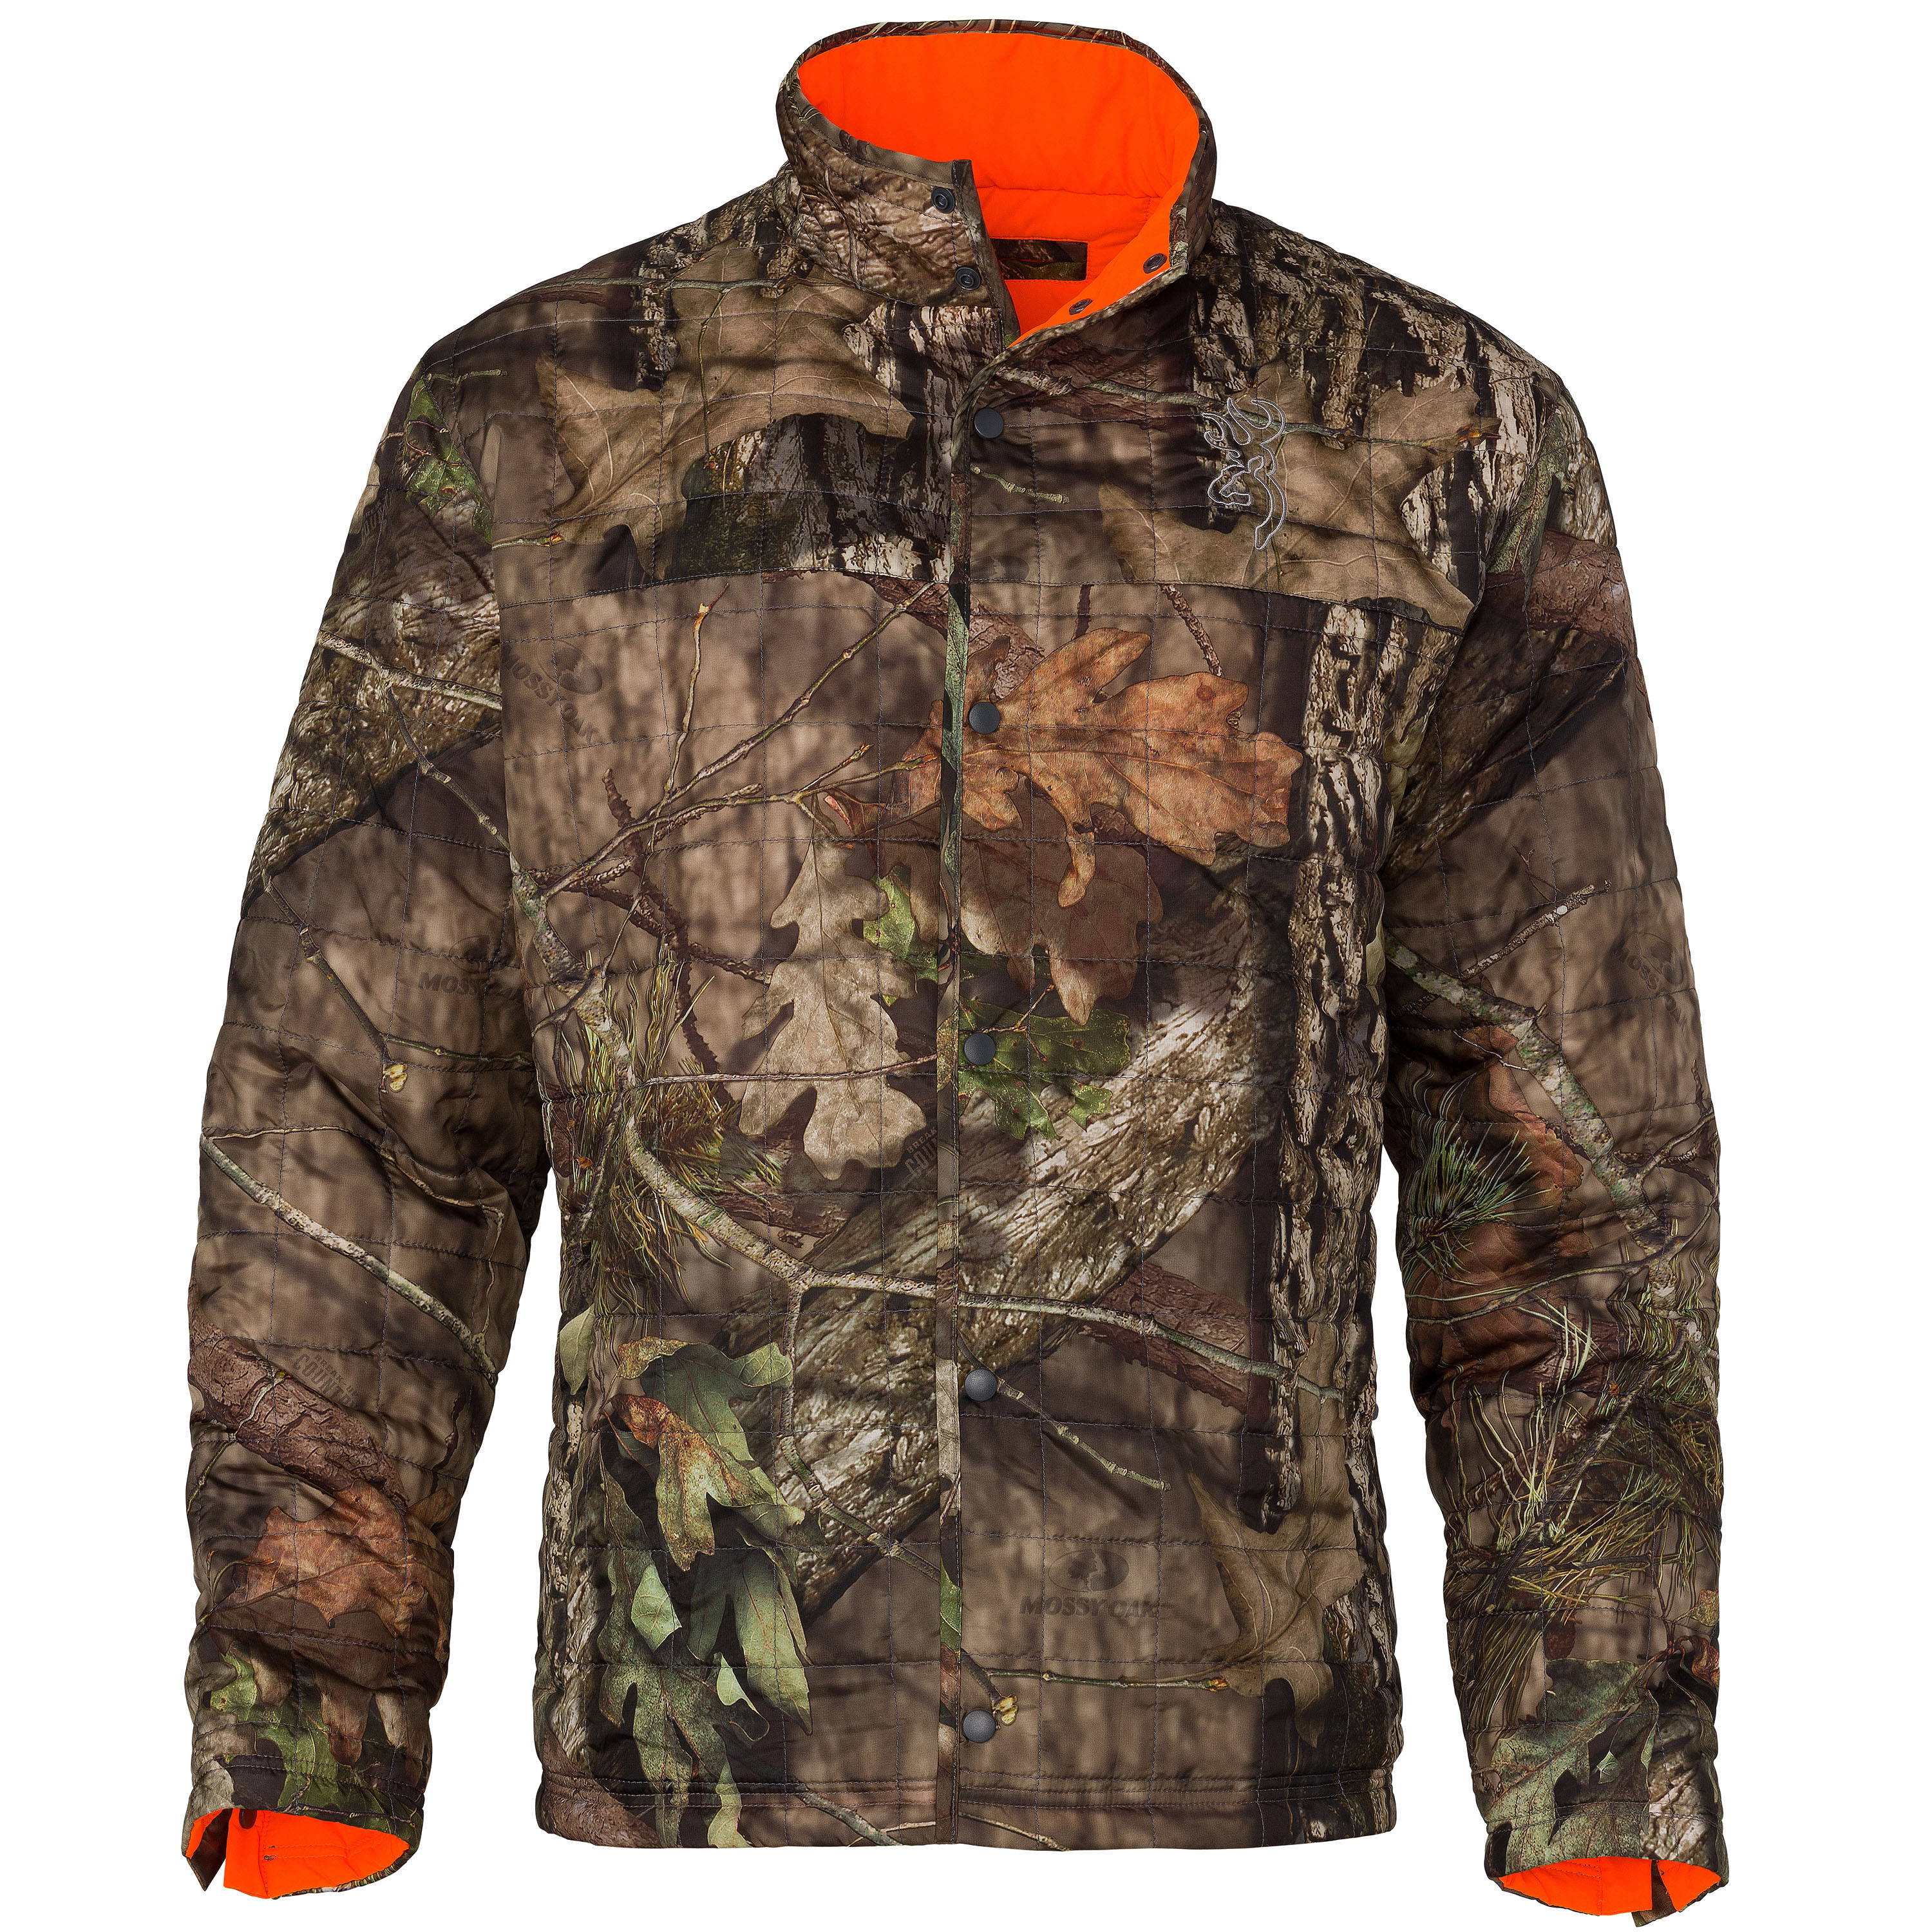 Browning Quick Change-WD Insulated Jacket Mossy Oak Break-Up Country Blaze, X-Large by Browning